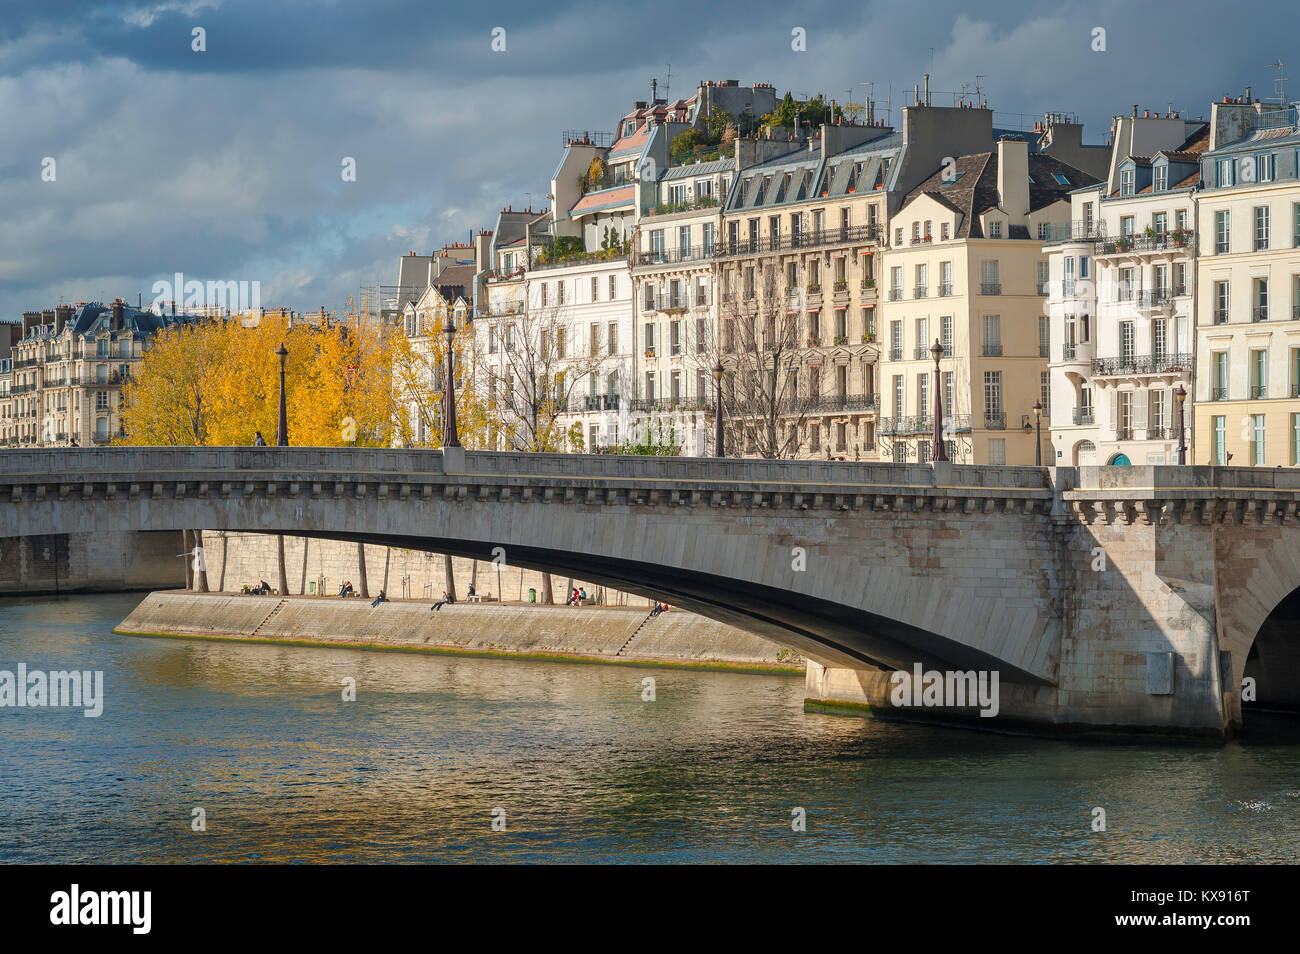 Paris architecture, typical 19th century apartment buildings facing the River Seine on the Ile St-Louis in Paris, - Stock Image